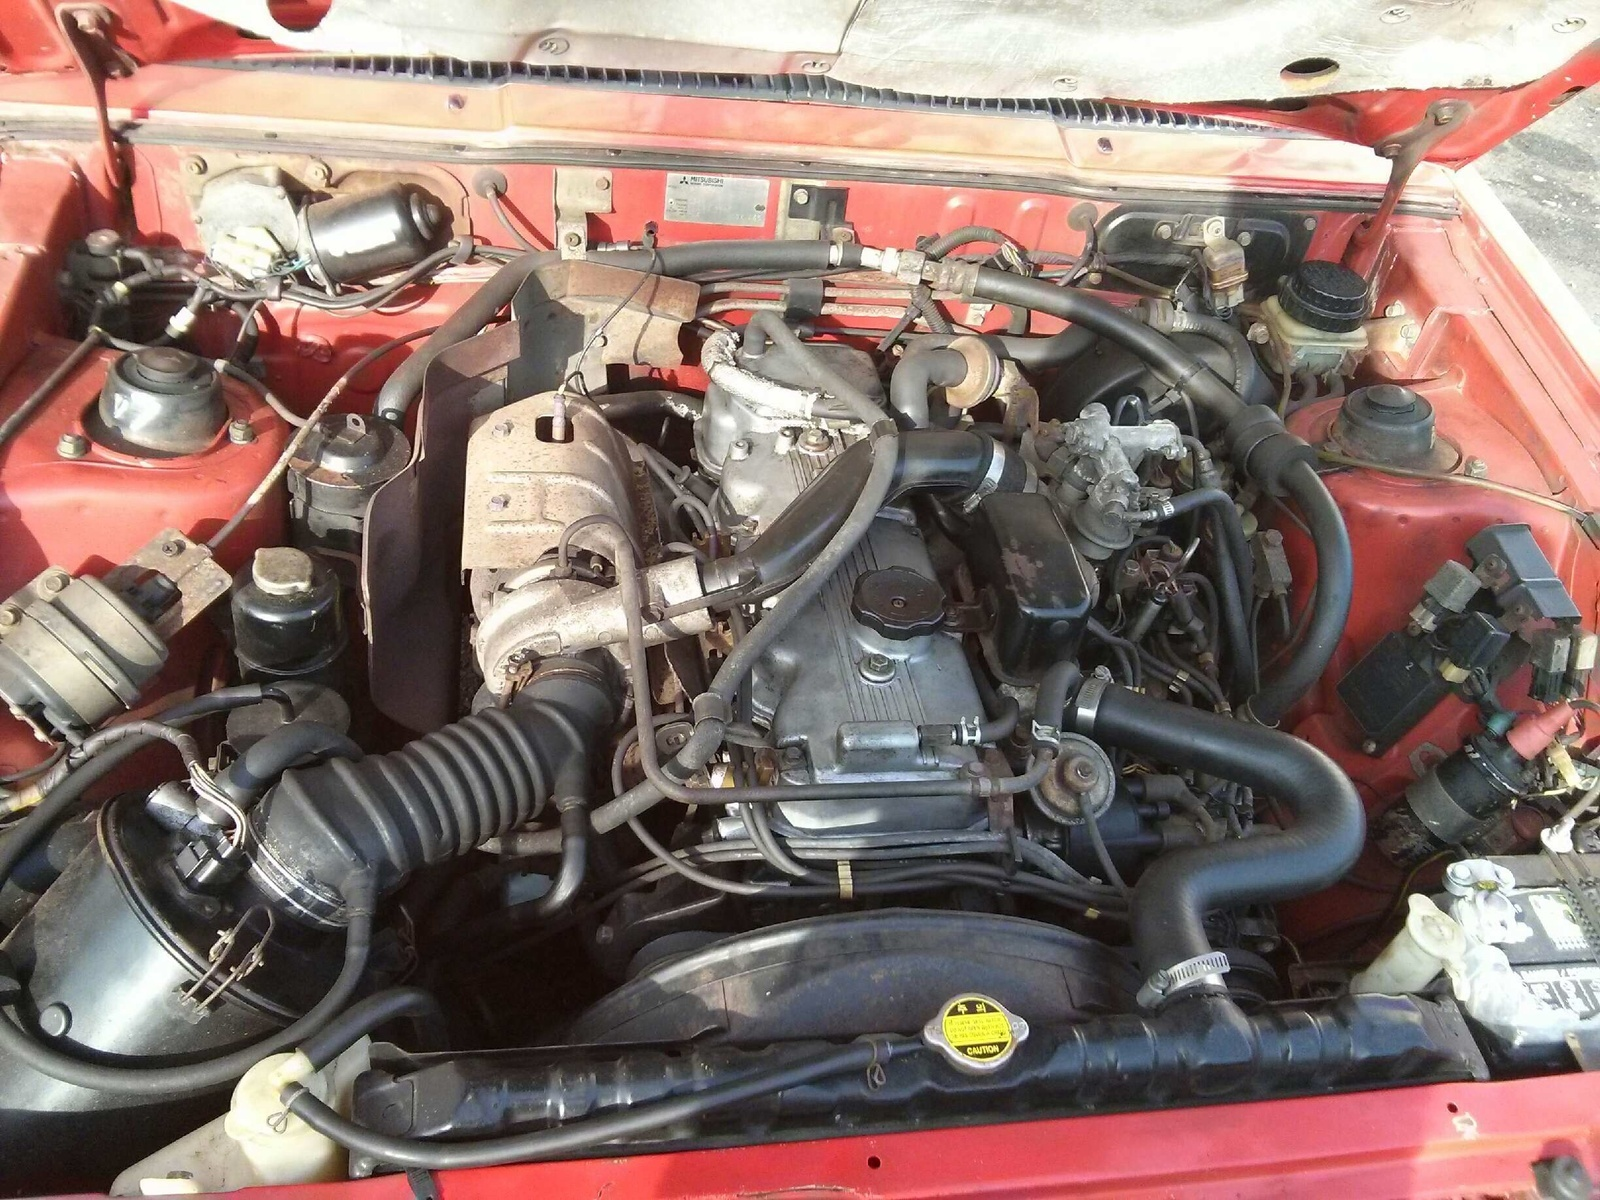 Mitsubishi Starion Questions - 87 starion won't accelerate during